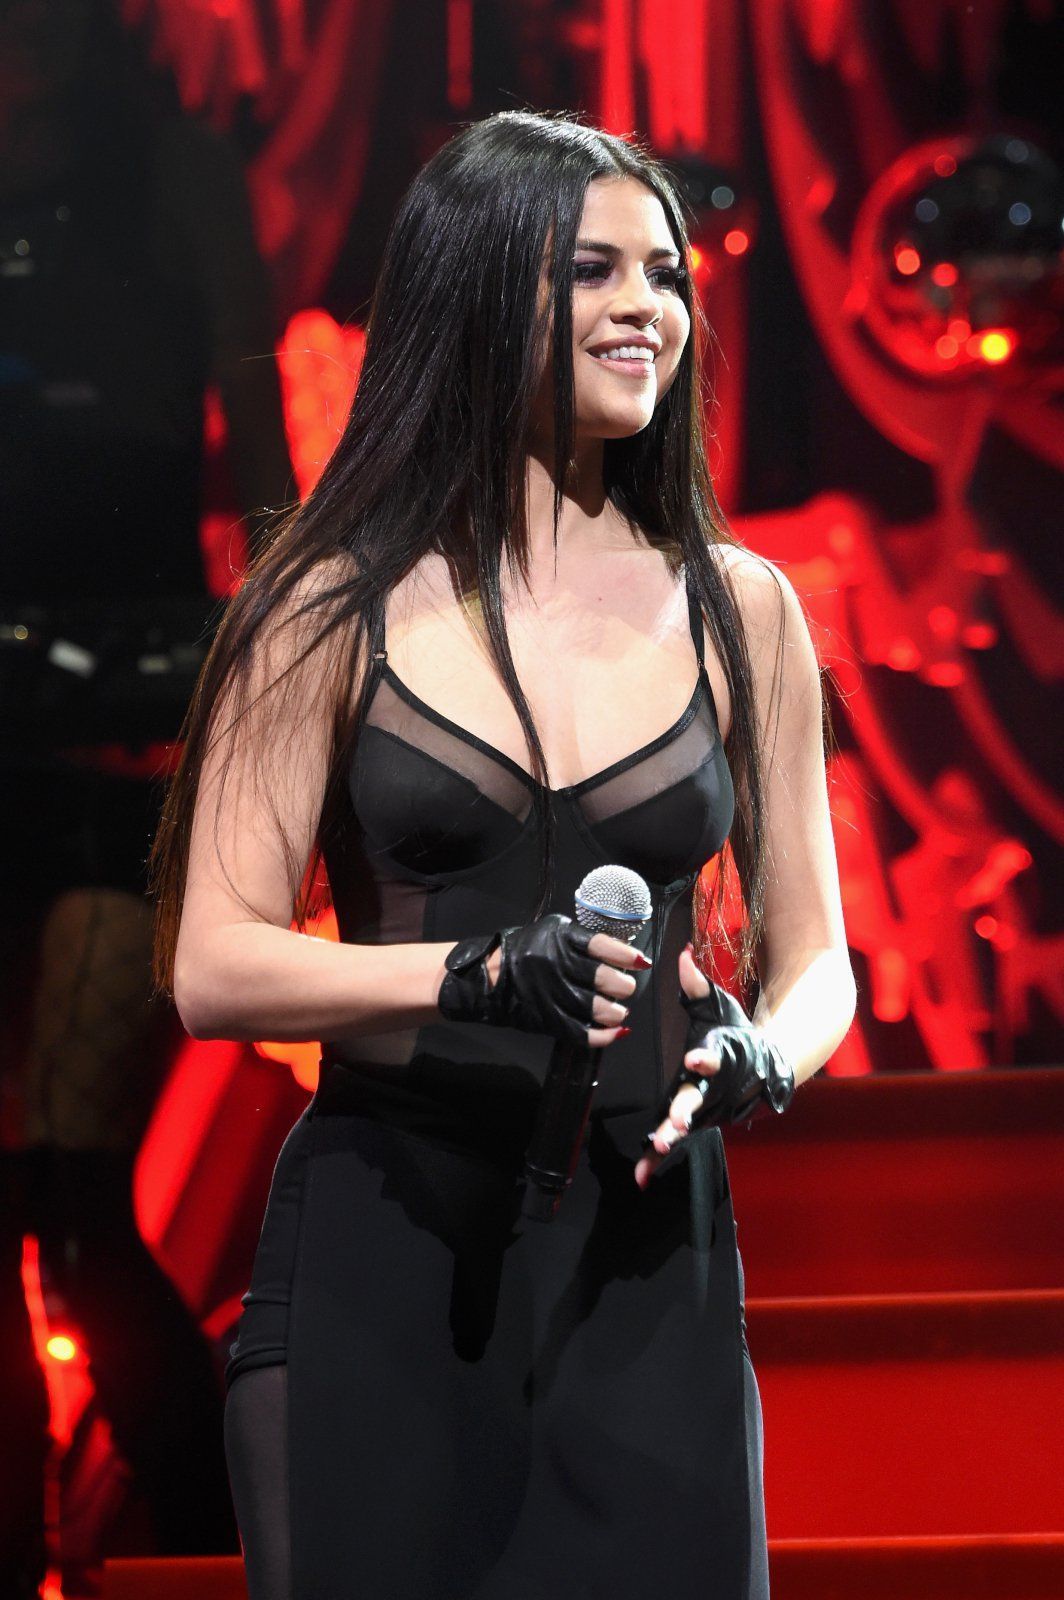 Selena Gomez at Q102's Jingle Ball 2015 - Photo Selena Gomez 2015